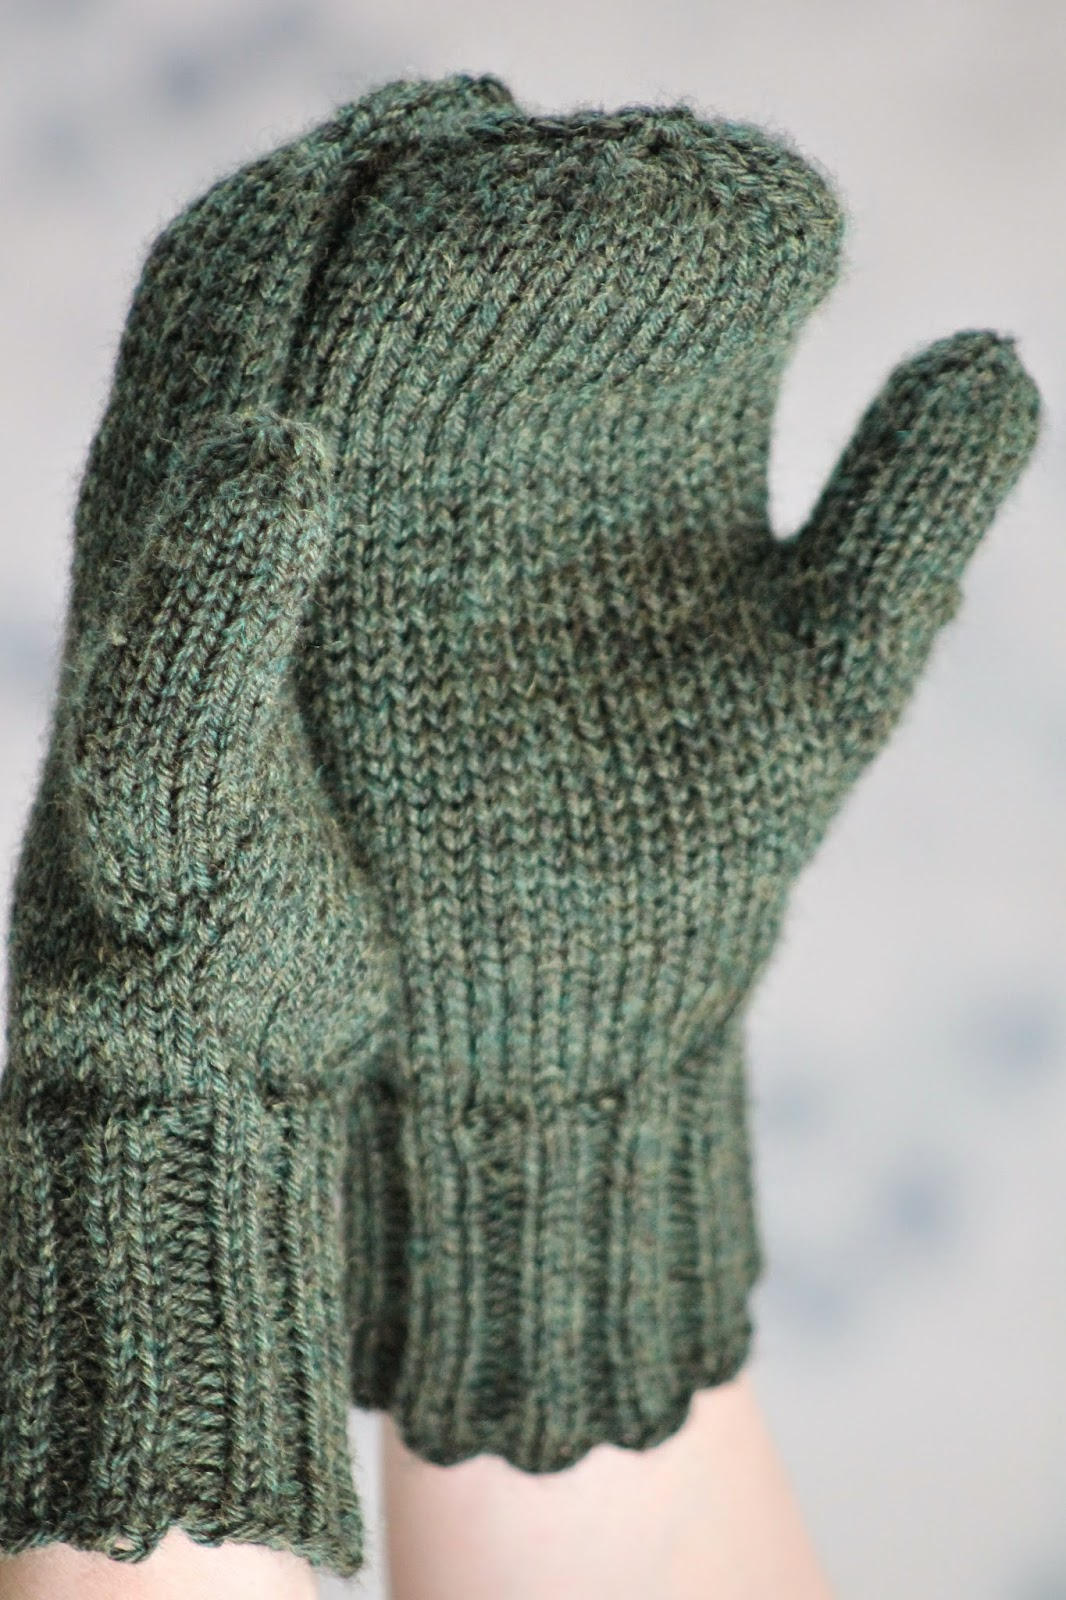 Knitting Pattern For Mittens Using Two Needles : Balls to the Walls Knits: Doug Fir Mittens